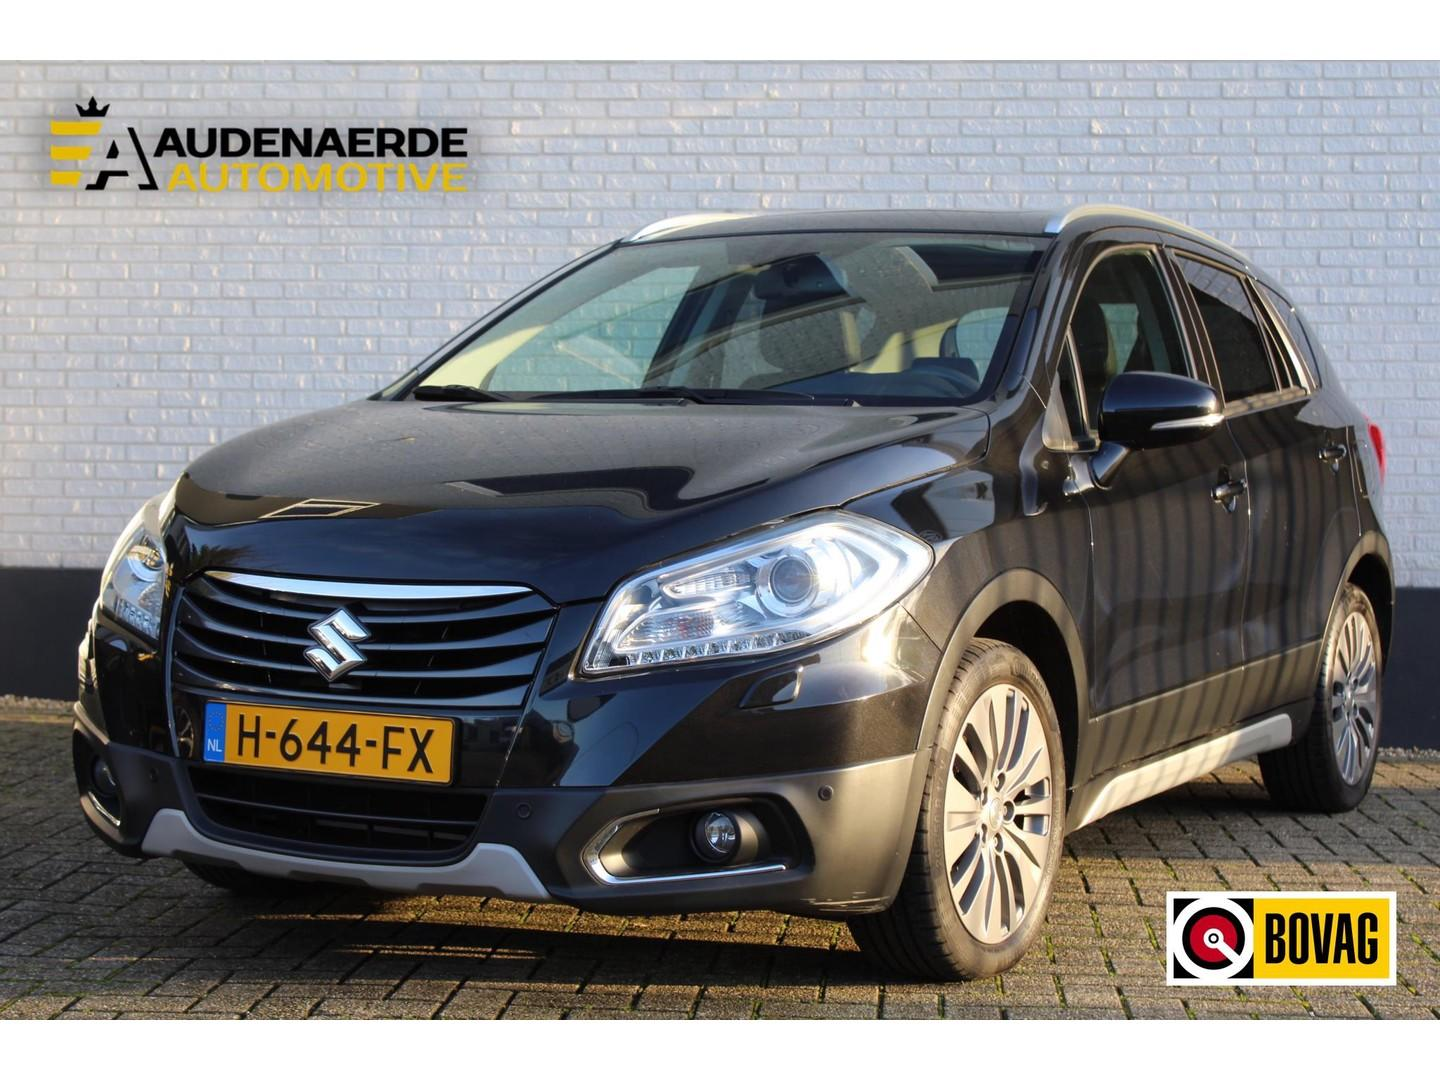 Suzuki S-cross 1.6 high executive navigatie